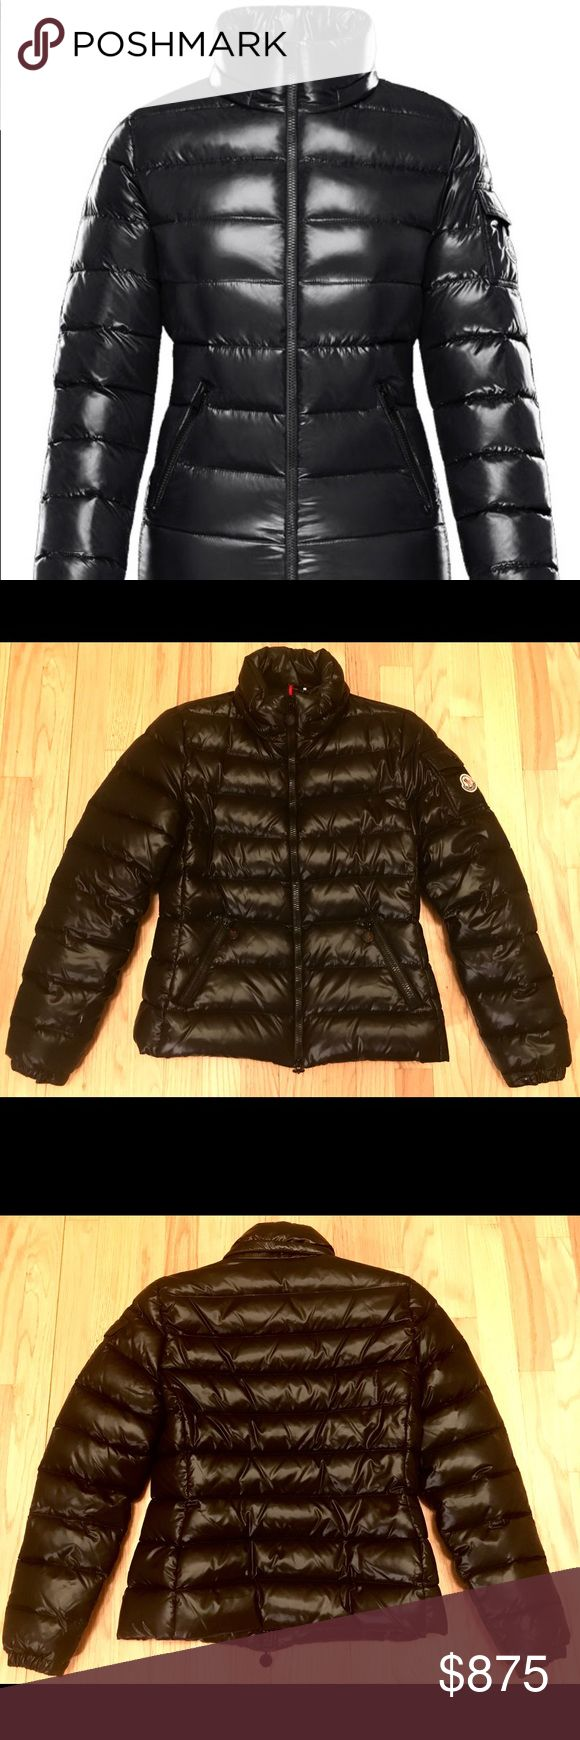 MONCLER Bady Down Puffer Jacket, Sz 0, 100 Auth! Pre